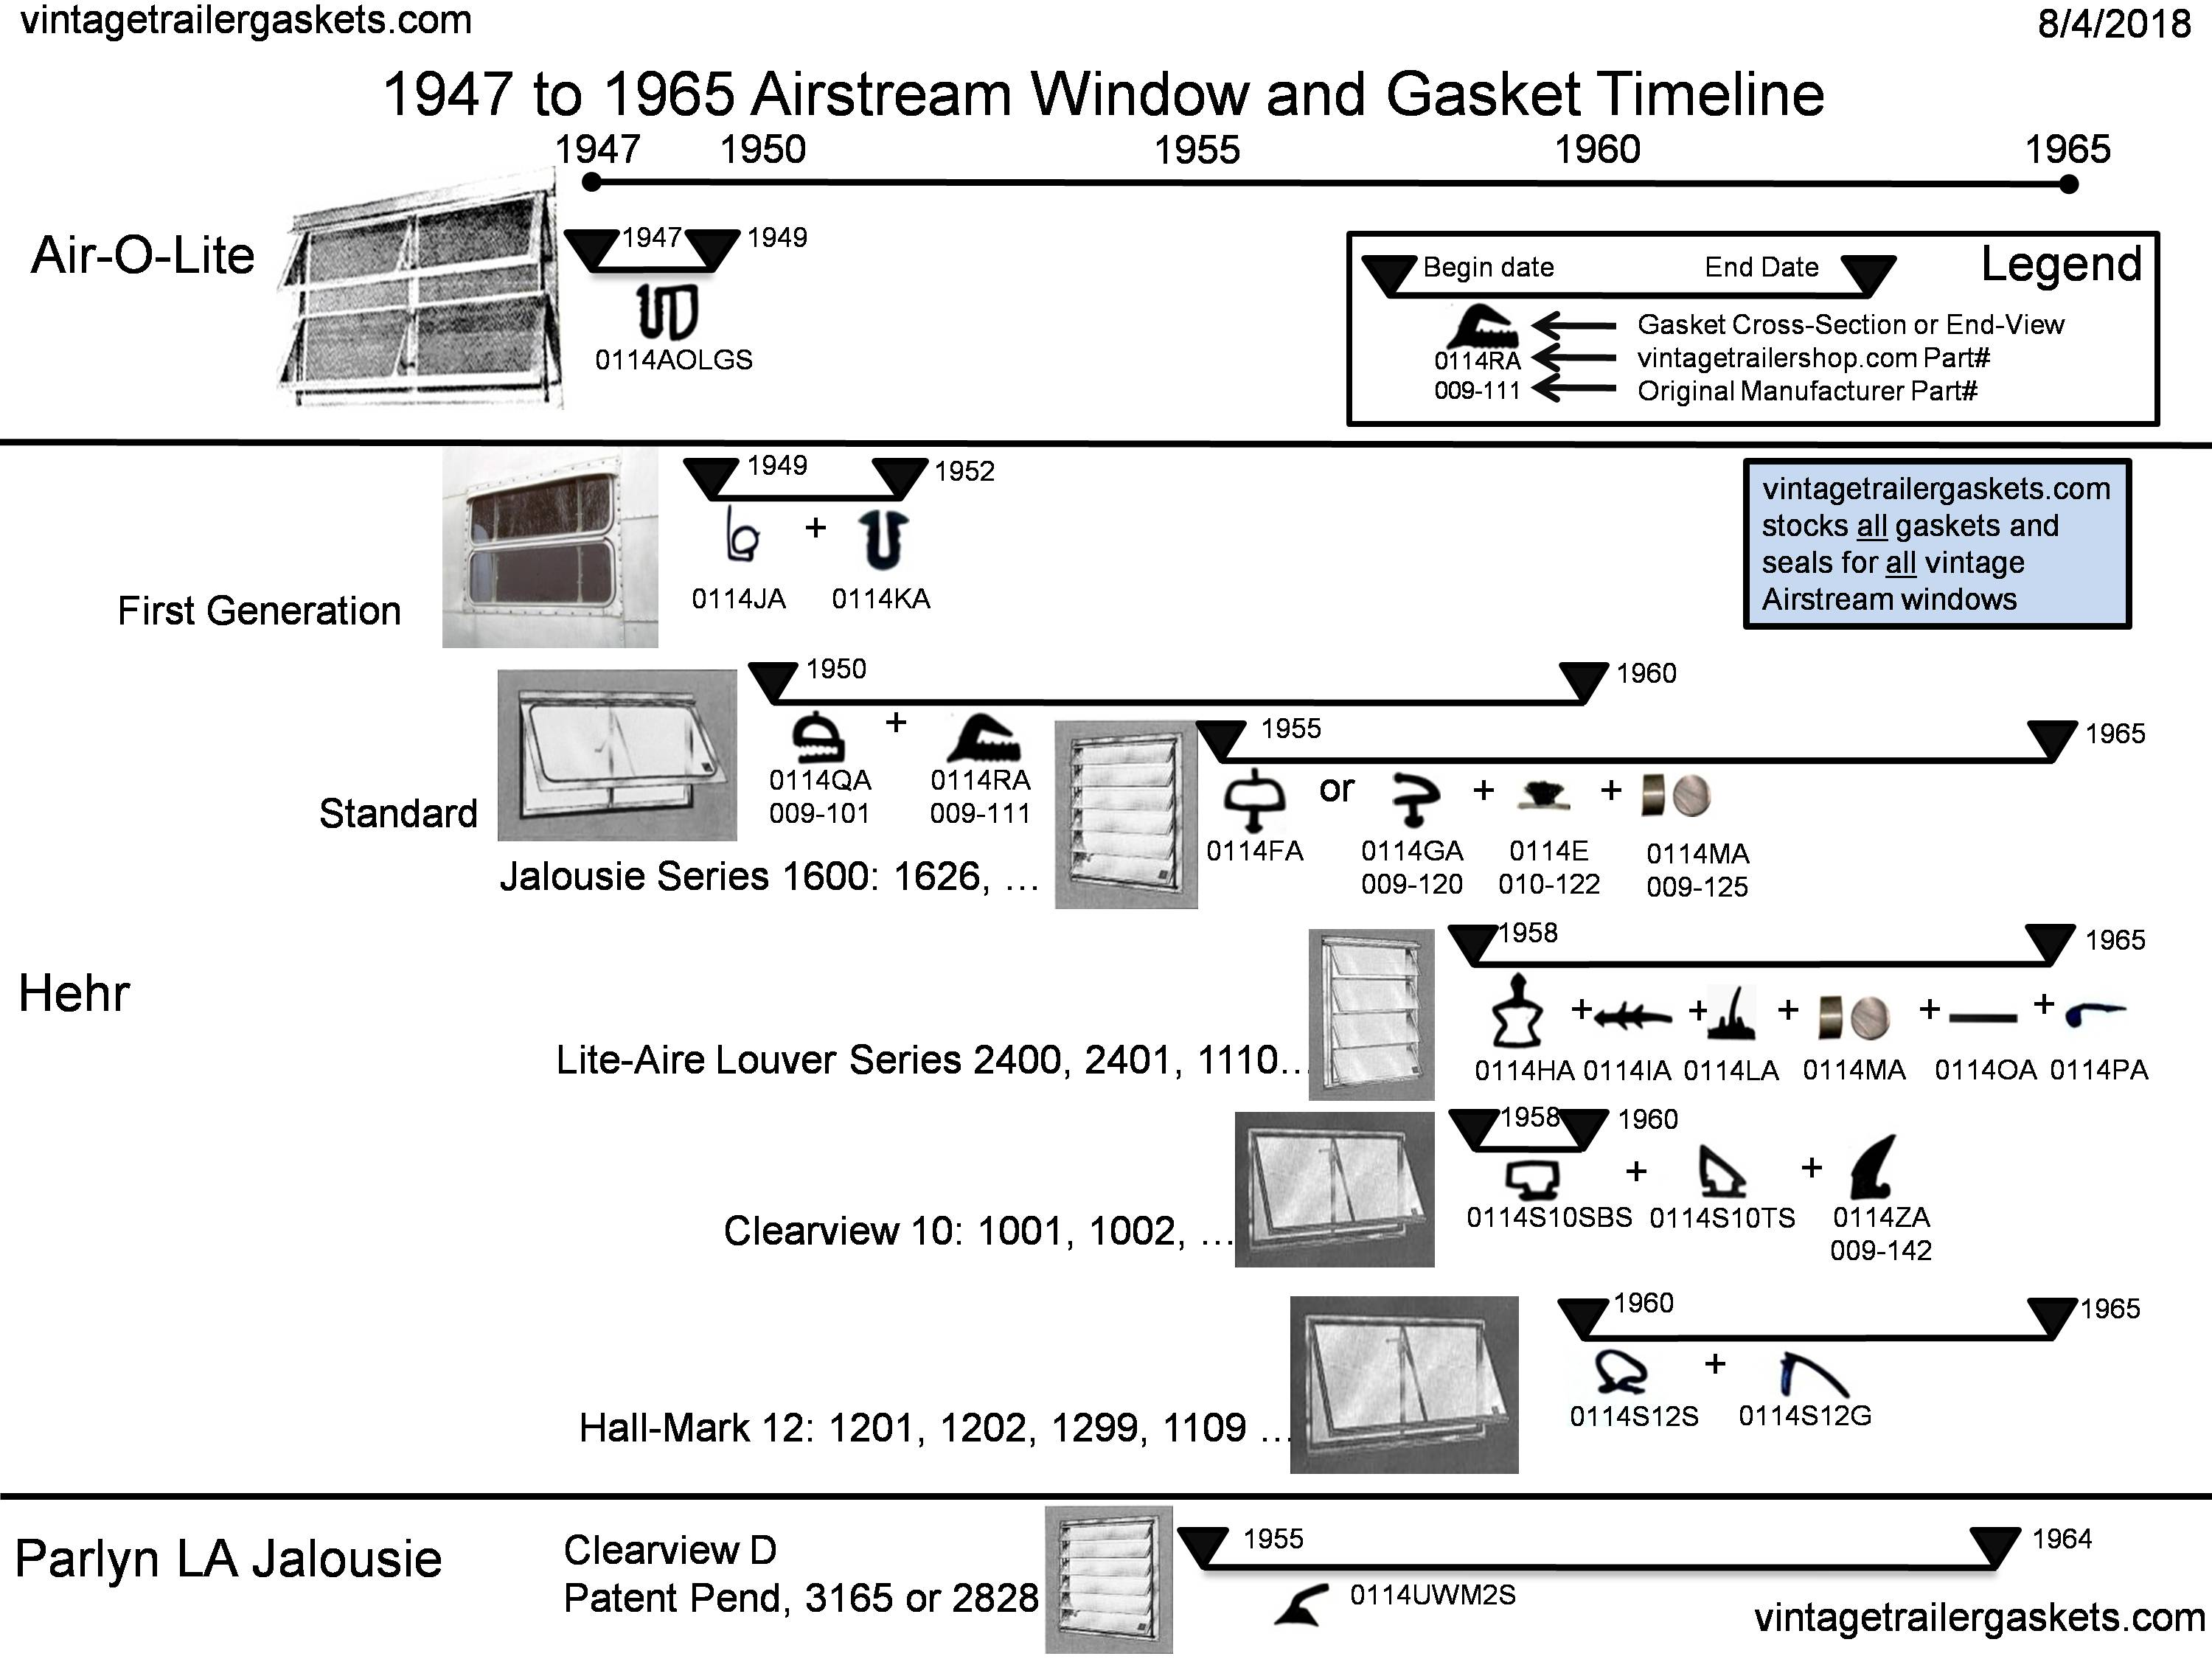 Vintage Window Library Trailer Gaskets Original Wiring Diagram Of 1965 Comet 21 1947 Hehr And Parlyn Gasket Timeline